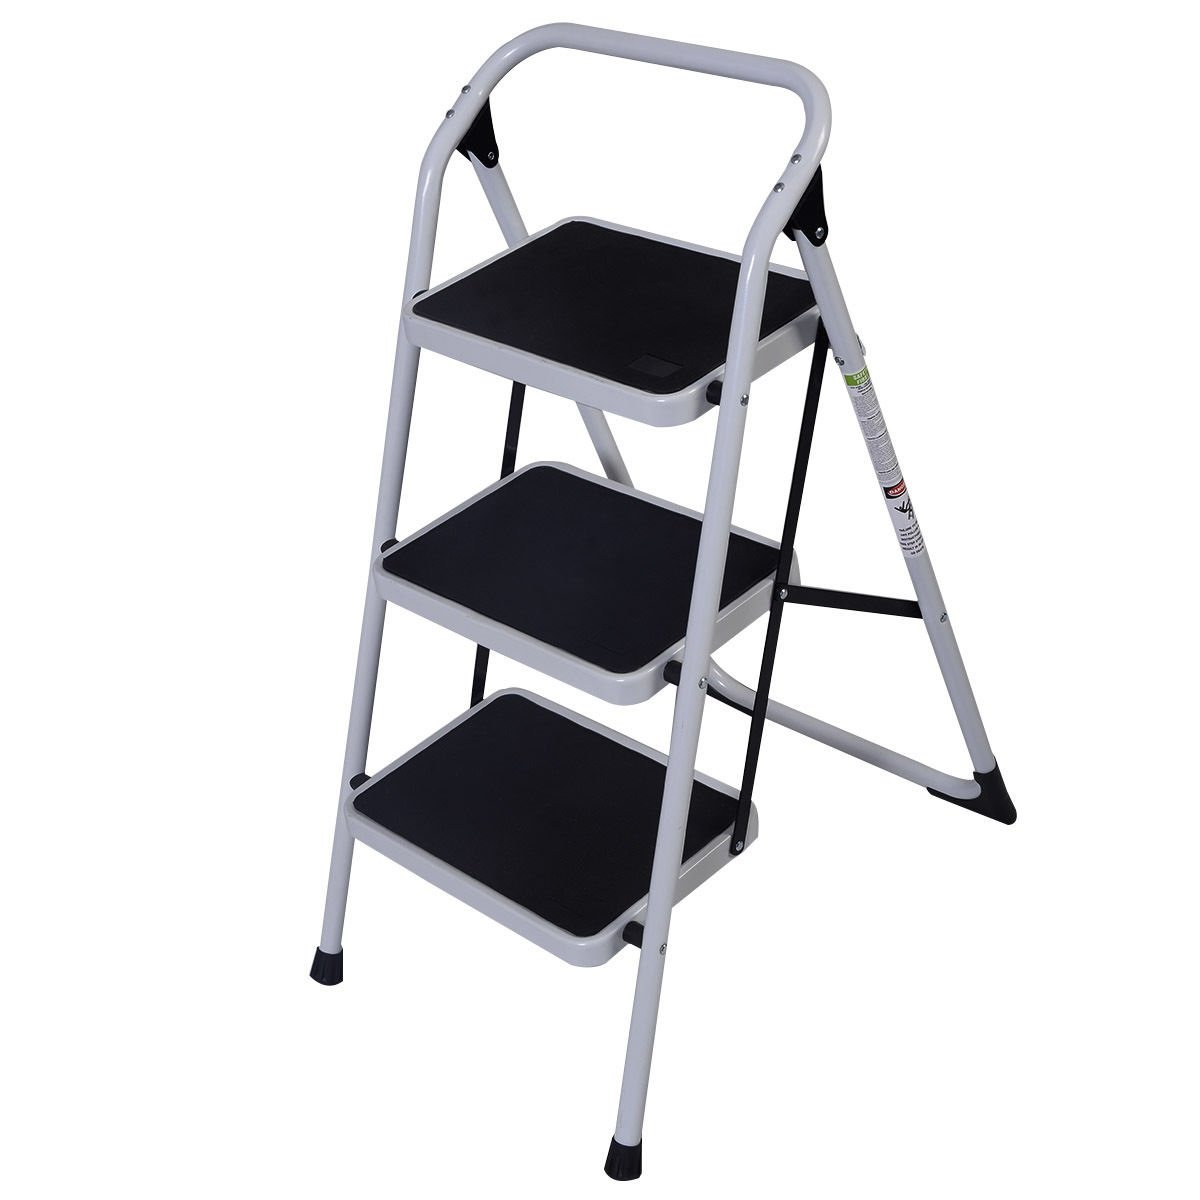 Goplus 3 Step Ladder Folding Heavy Duty Step Stool Anti-slip Platform Sturdy HD Construction 330lbs Capacity - - Amazon.com  sc 1 st  Amazon.com & Goplus 3 Step Ladder Folding Heavy Duty Step Stool Anti-slip ... islam-shia.org